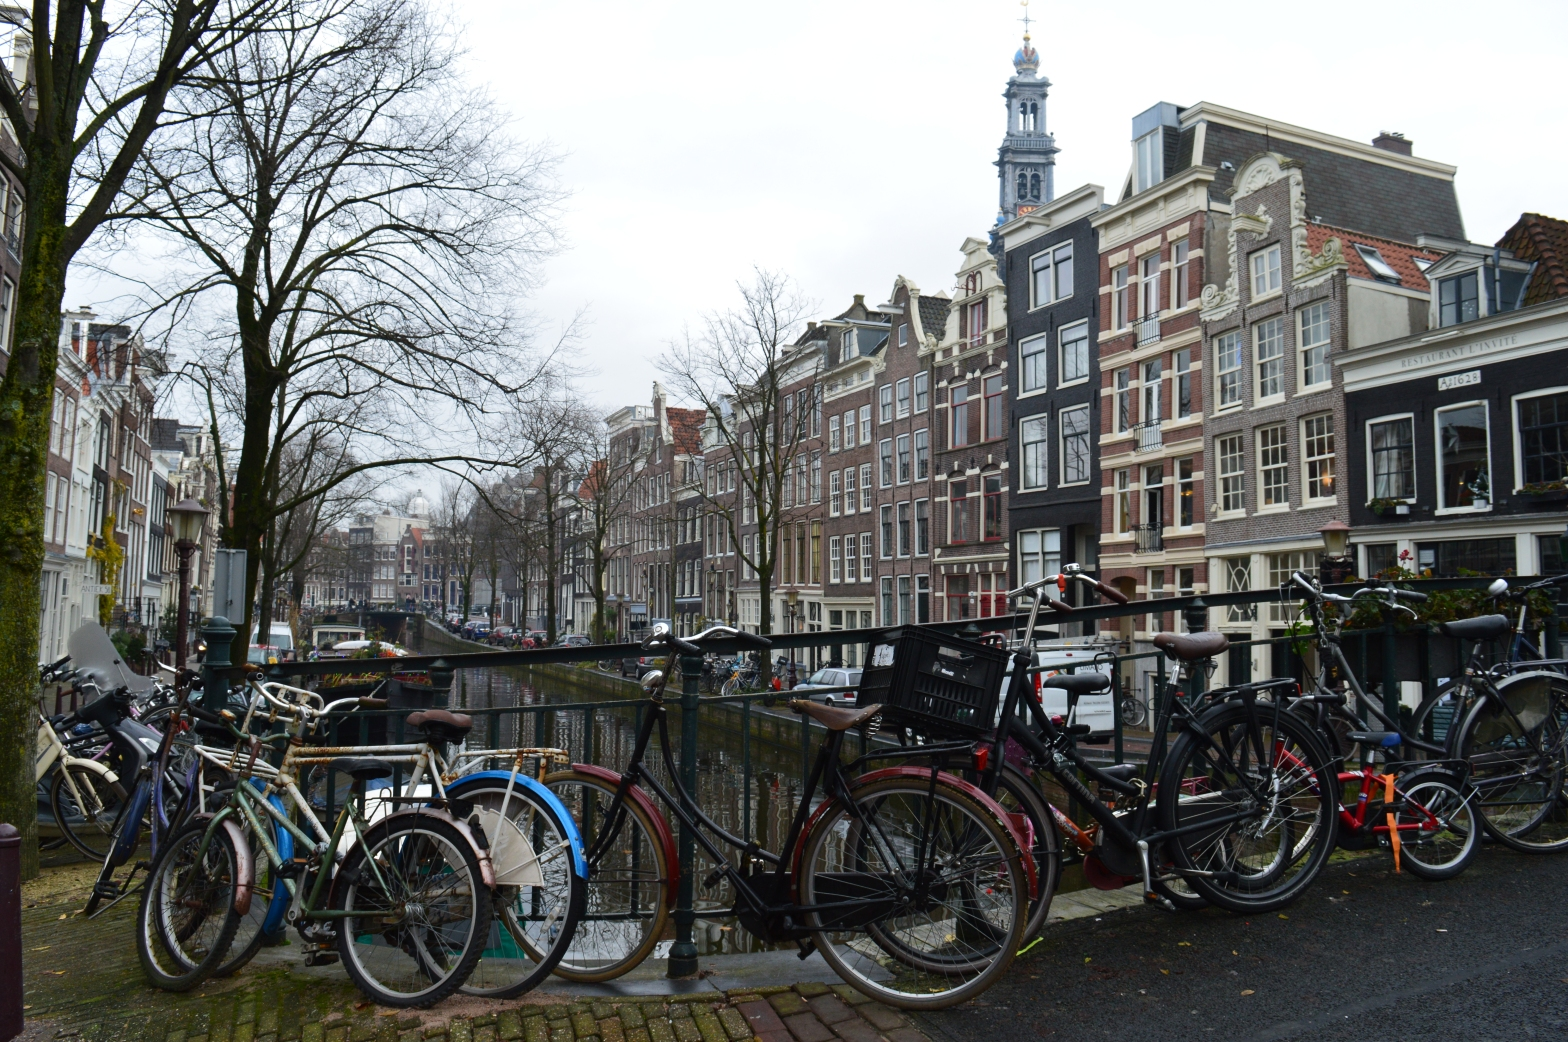 canals and bikes in Amsterdam